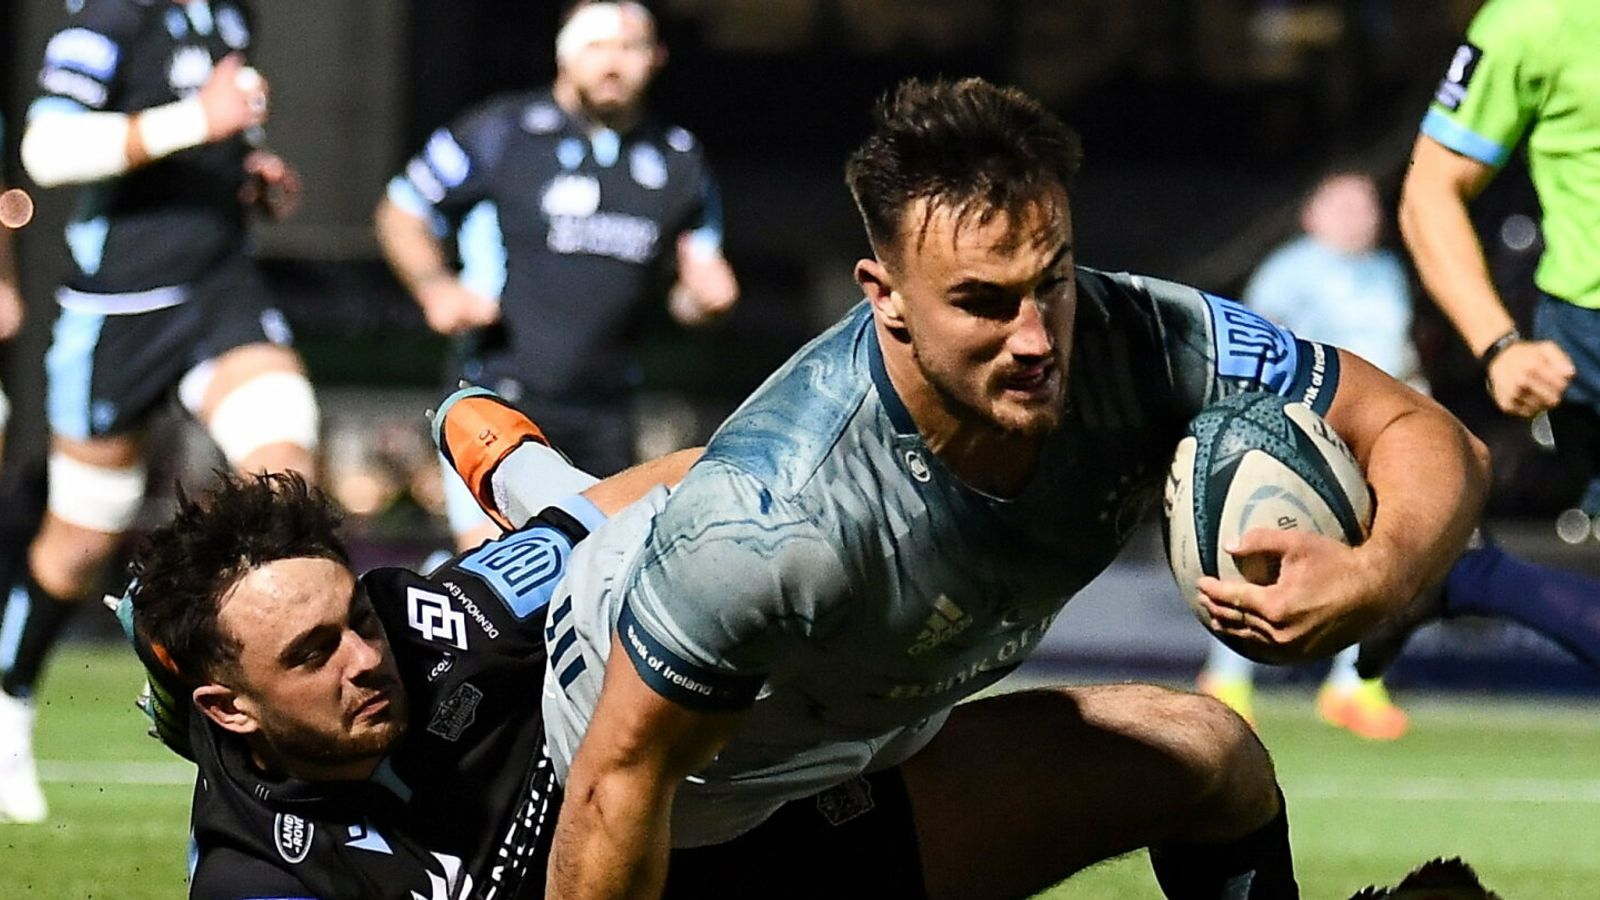 Friday's United Rugby Championship: Leinster win at Glasgow Warriors; Scarlets beat Benetton